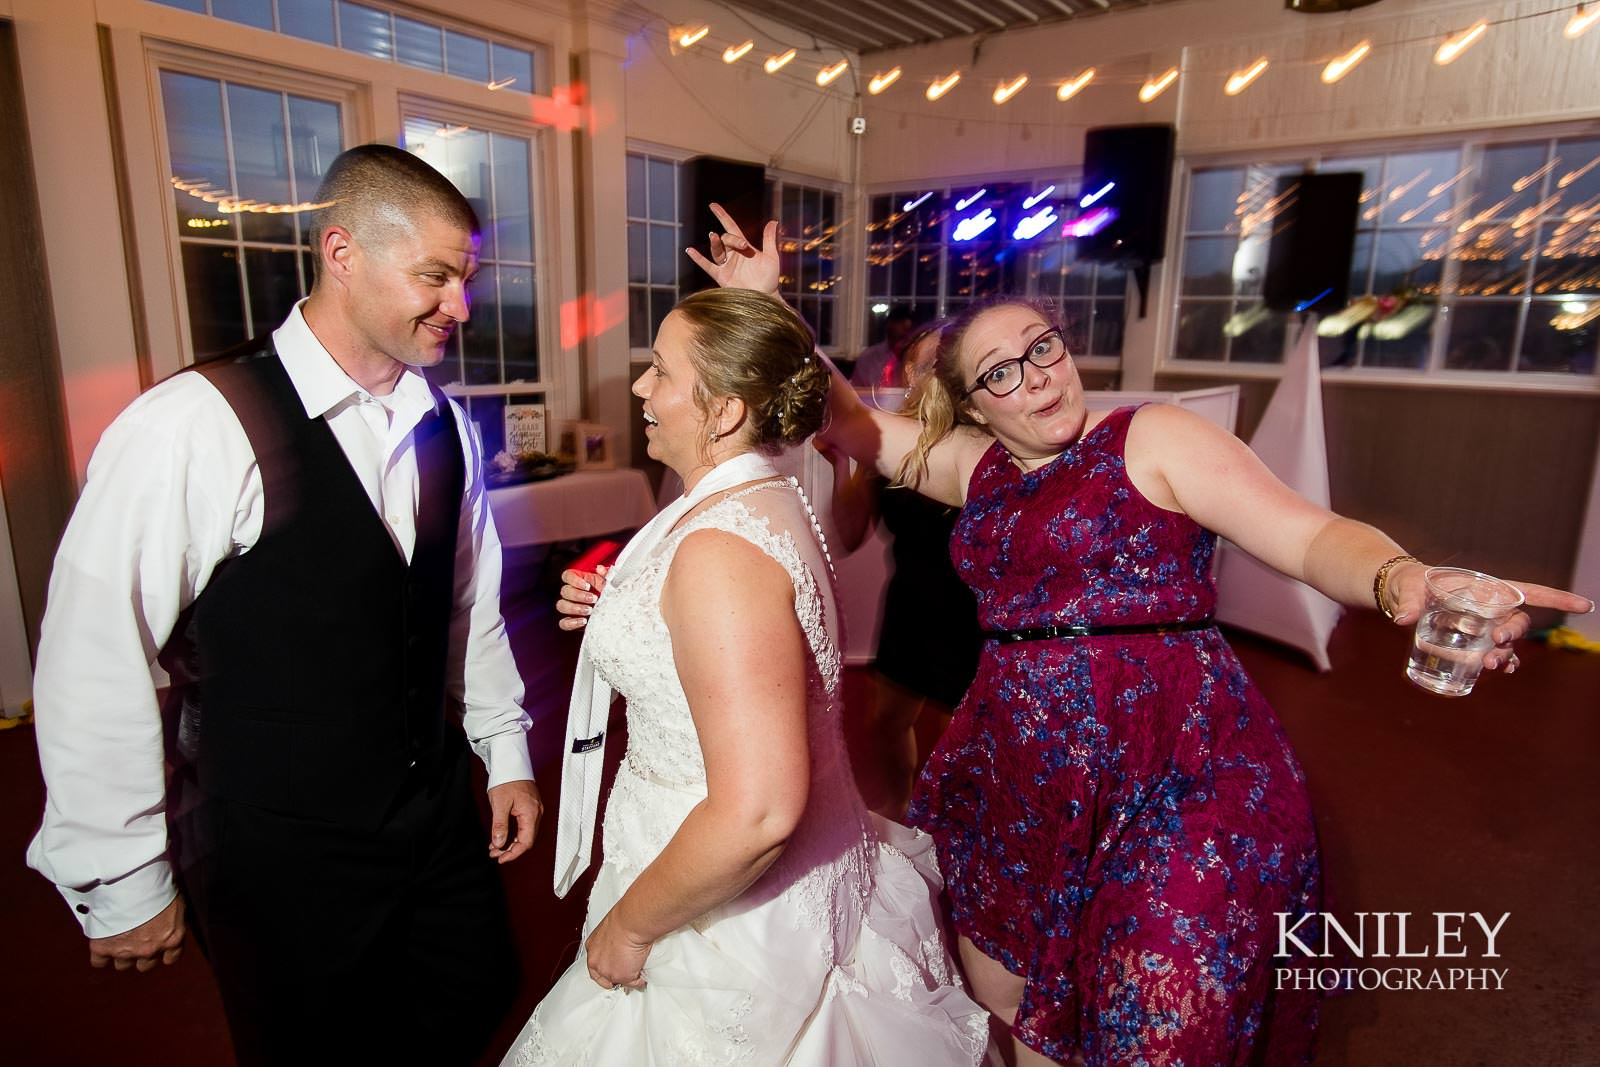 73-Jerris-Wadsworth-Wedding-Barn-Rochester-NY-Wedding-Photography.jpg